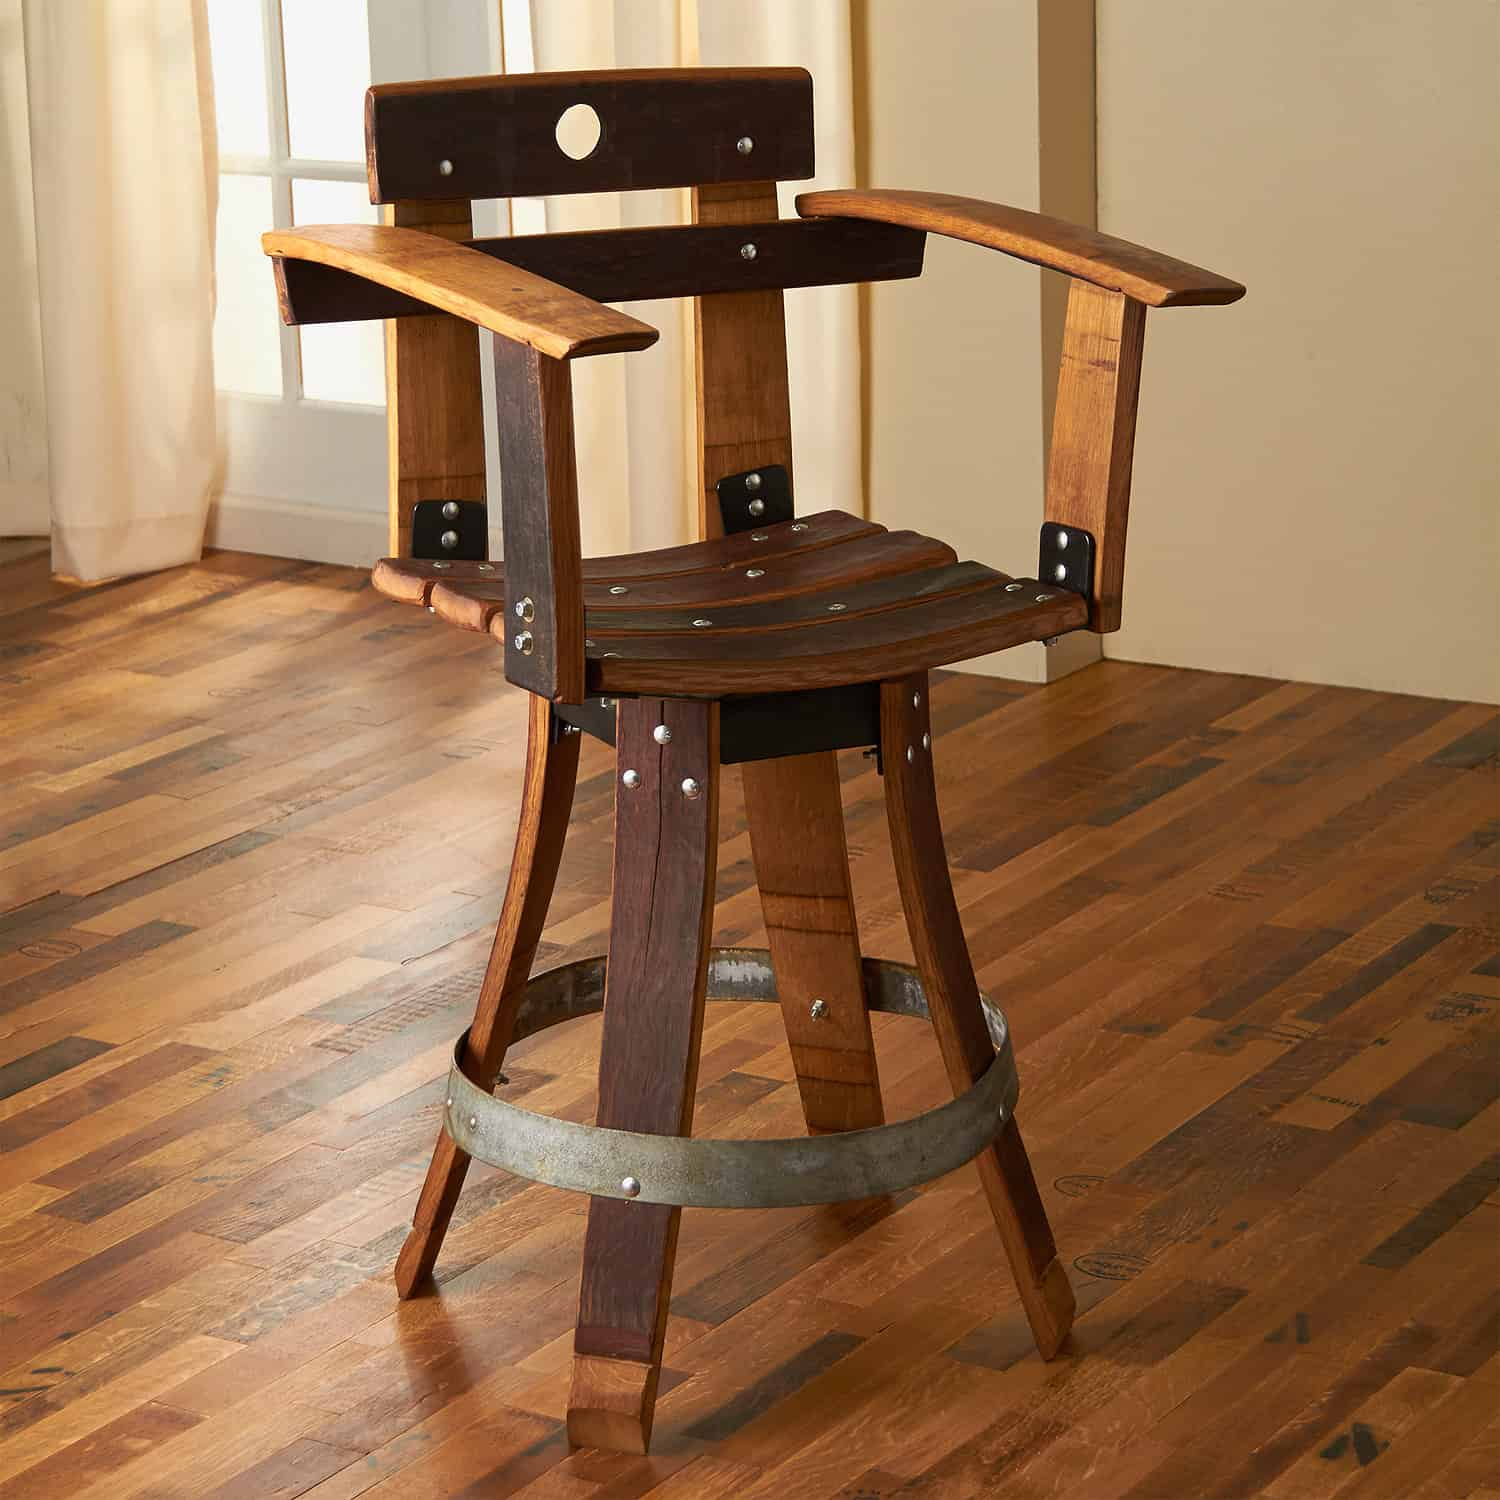 wine barrel chair target upholstered dining chairs 135 furniture ideas you can diy or buy photos